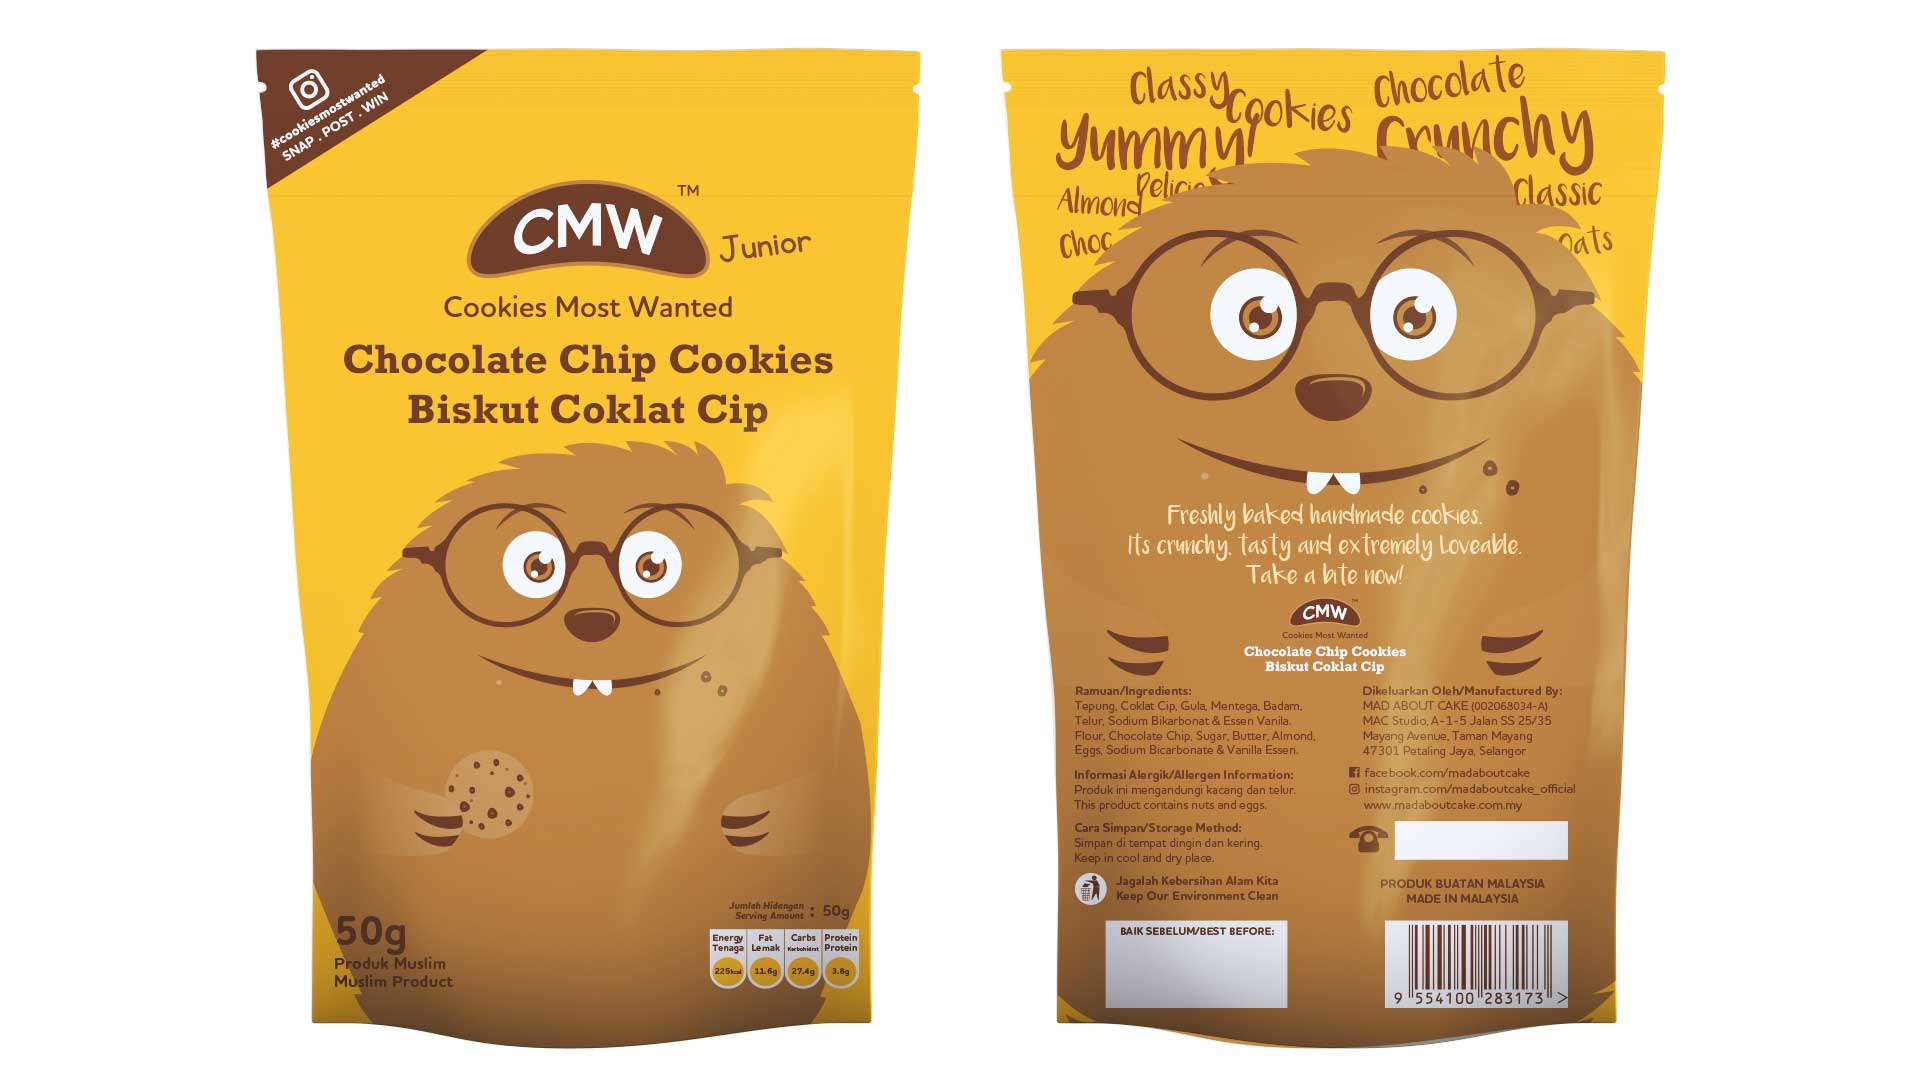 CMW Junior Chocolate Chip Cookies RM6.00 (Min 5 Packets)